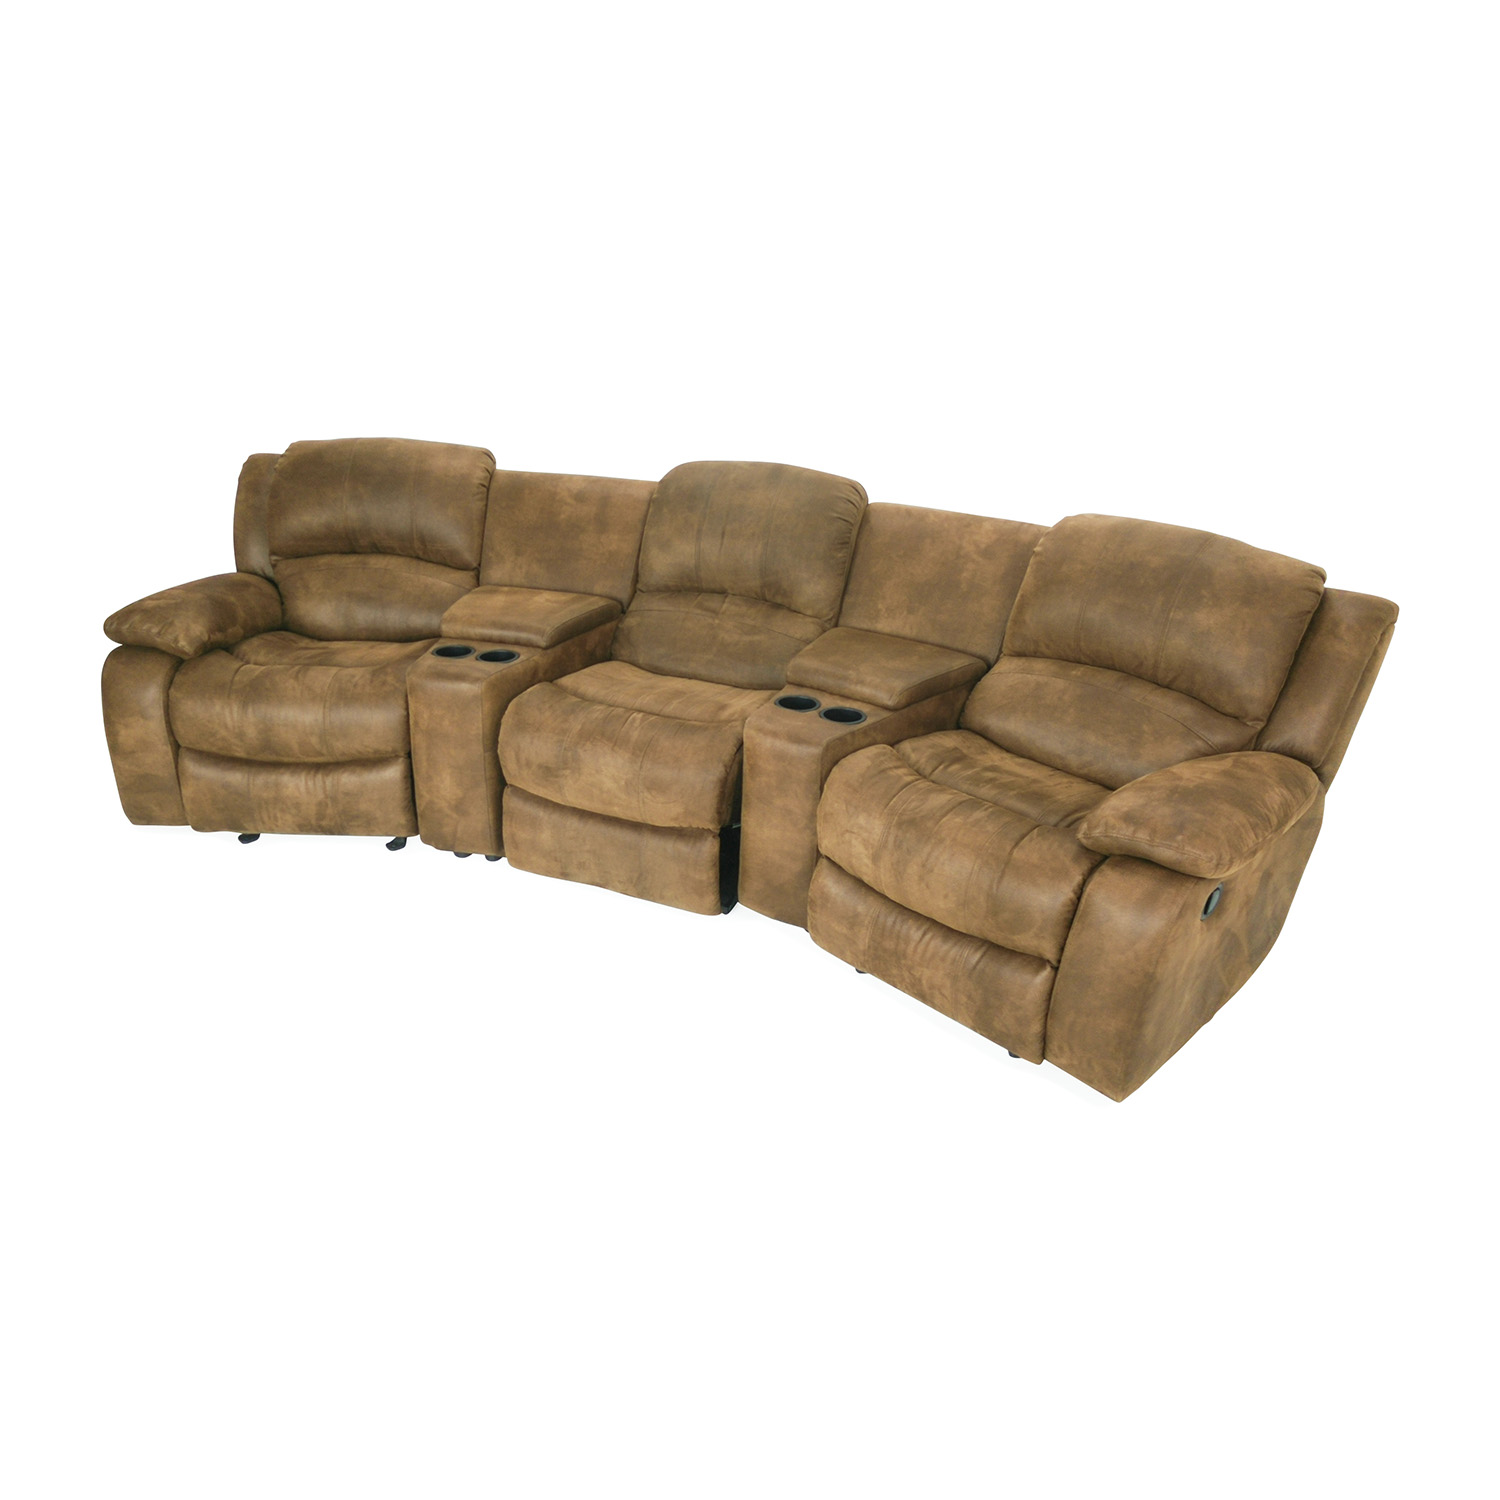 87 off raymour and flanigan raymour and flanigan theater seating couch sofas. Black Bedroom Furniture Sets. Home Design Ideas